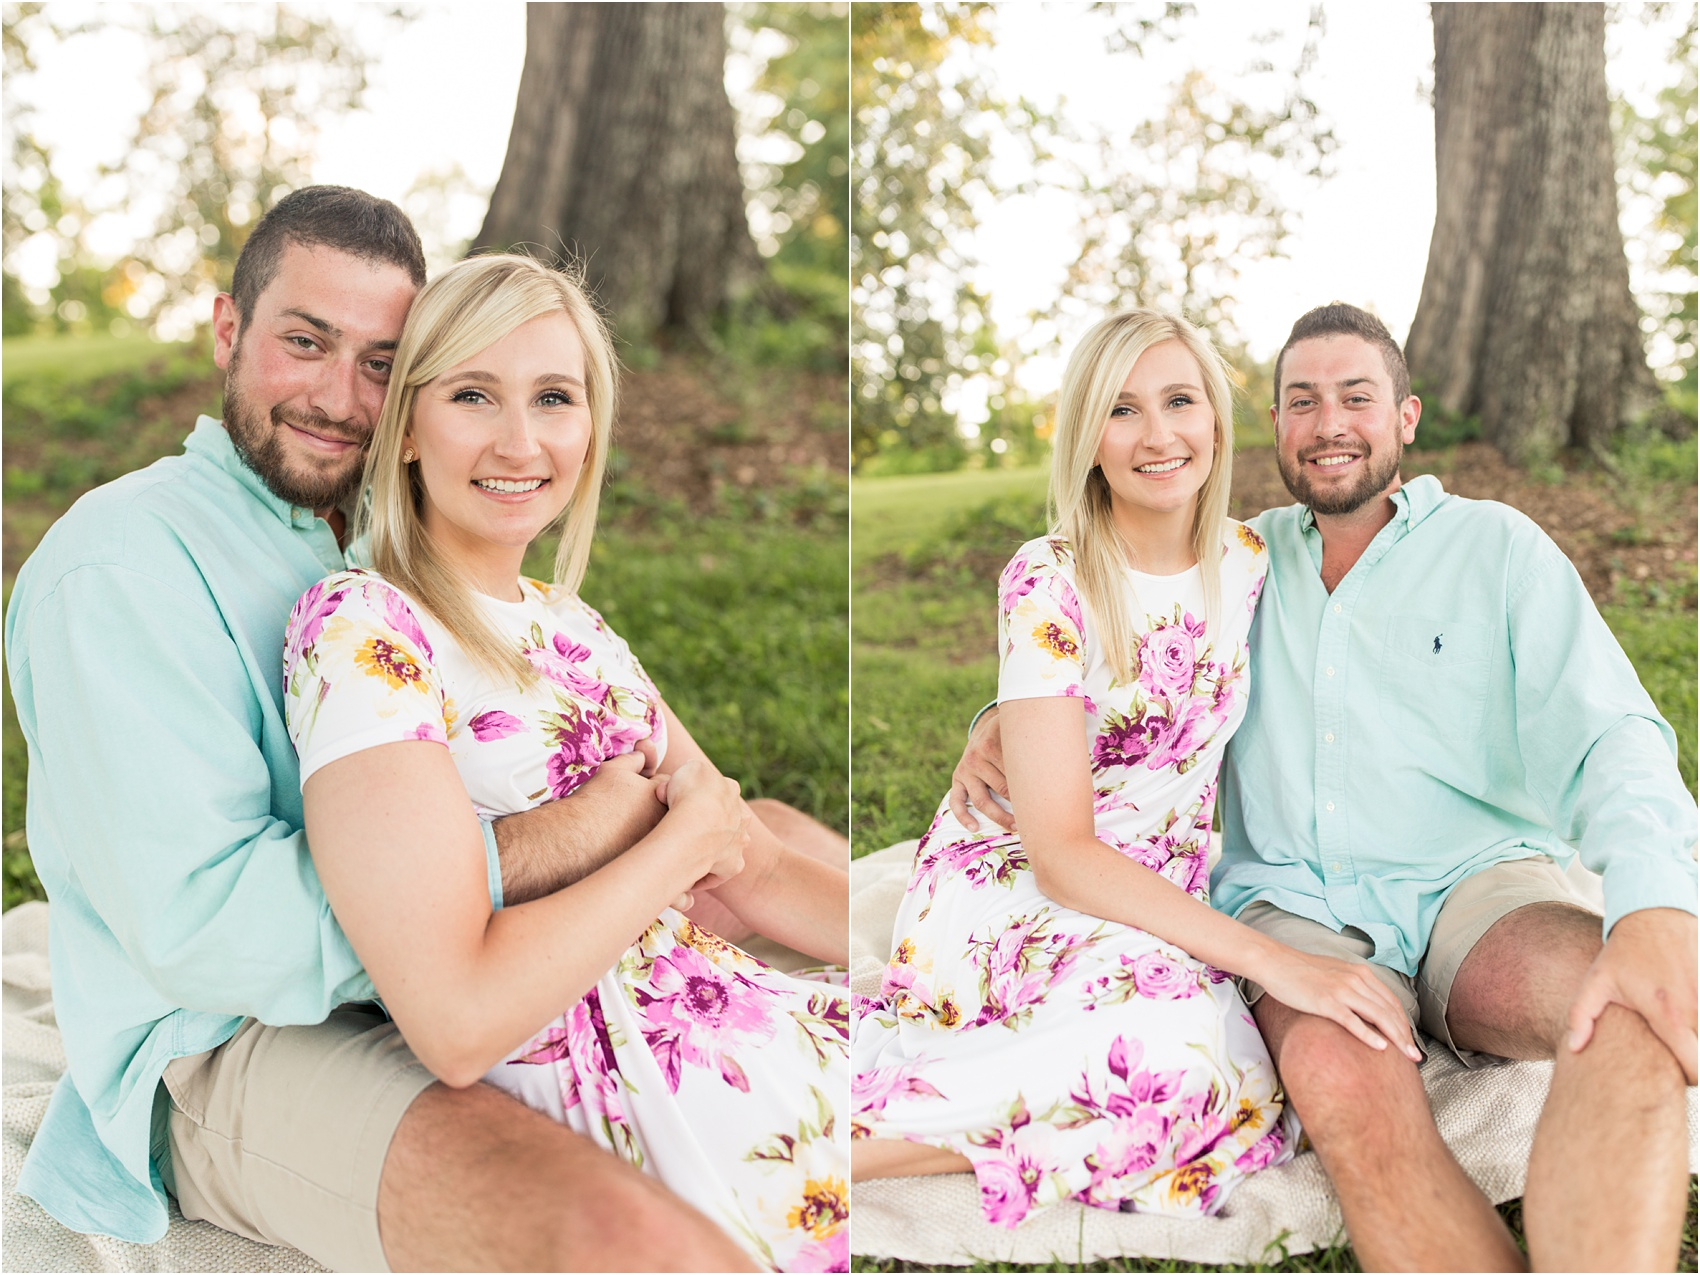 Savannah Eve Photography LLC- Kacie & Blythe-24.jpg